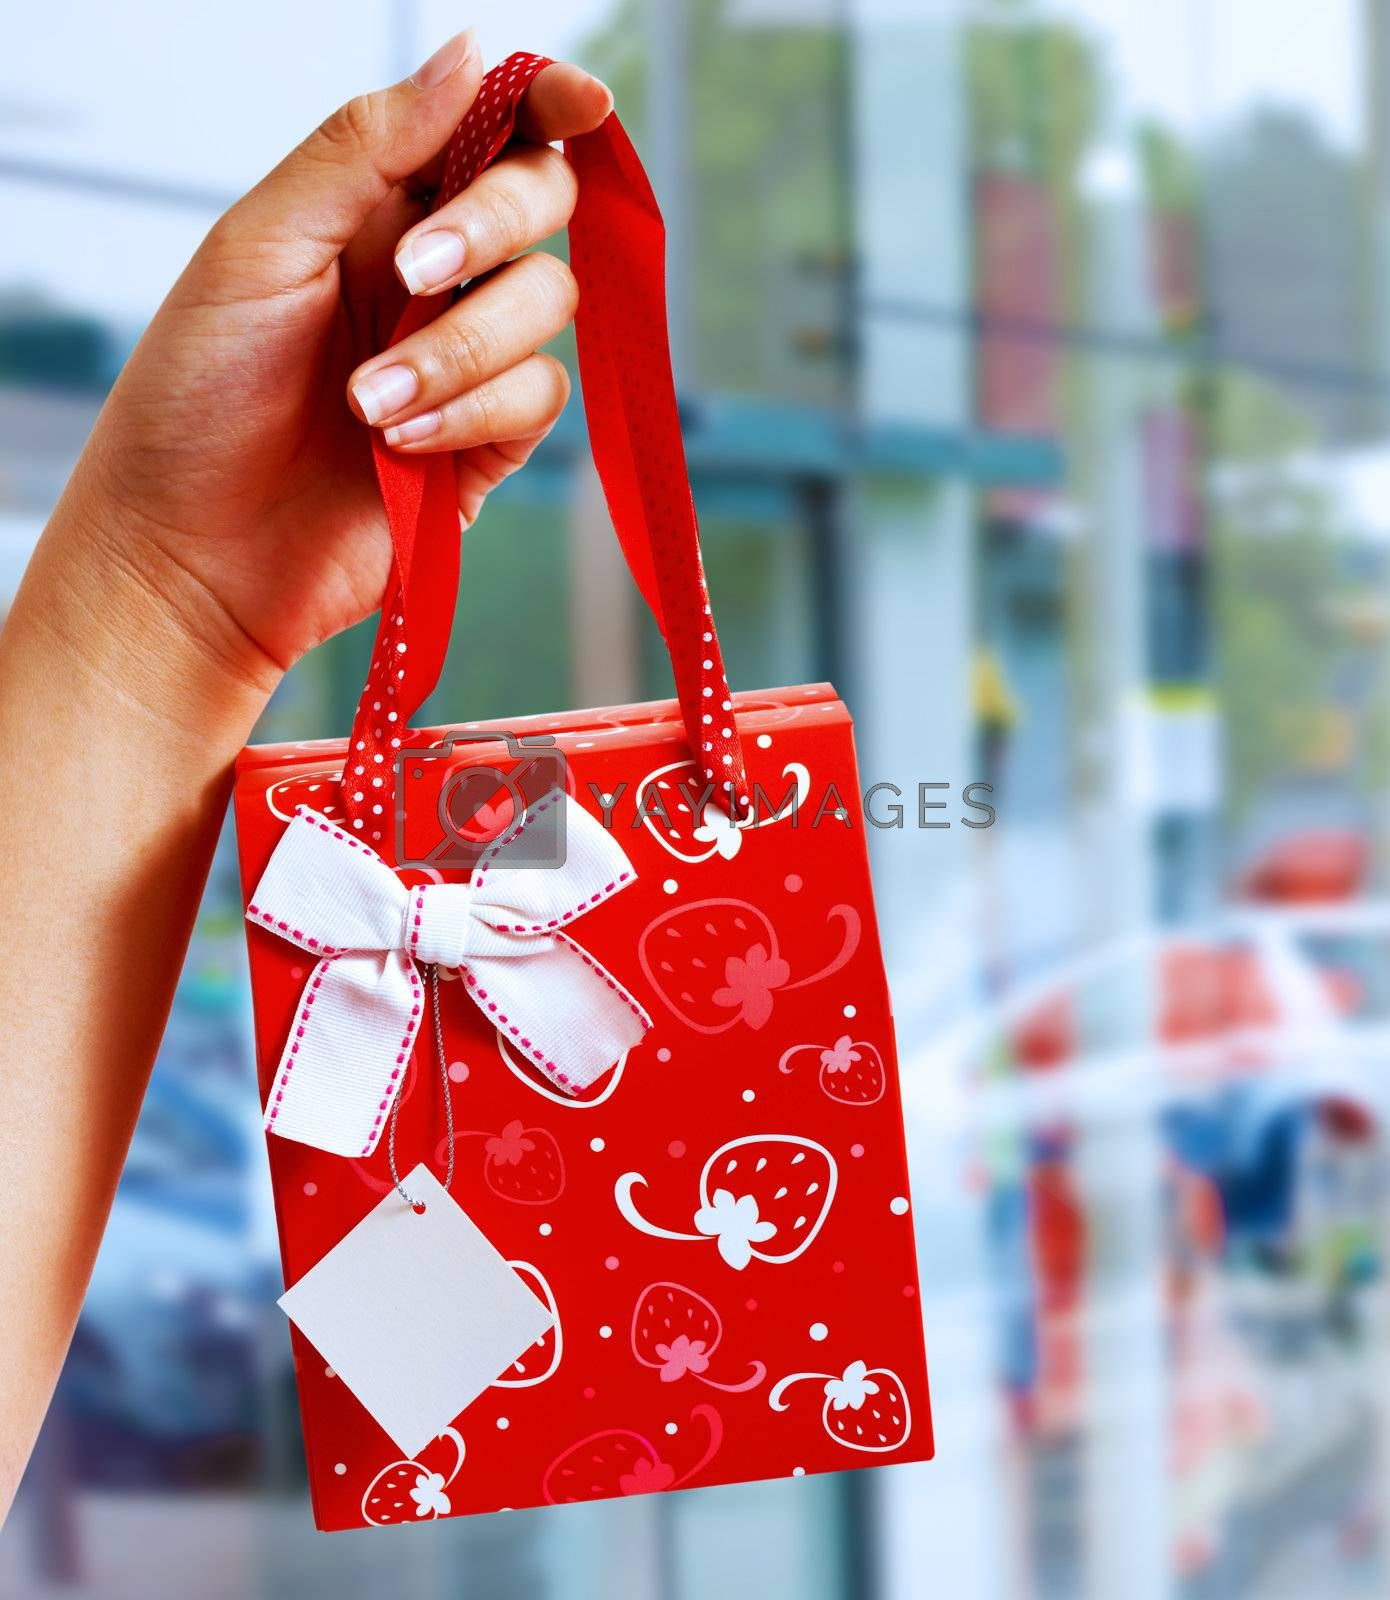 A Gift Wrapped Bag Being Held Up Outside A Shopping Mall